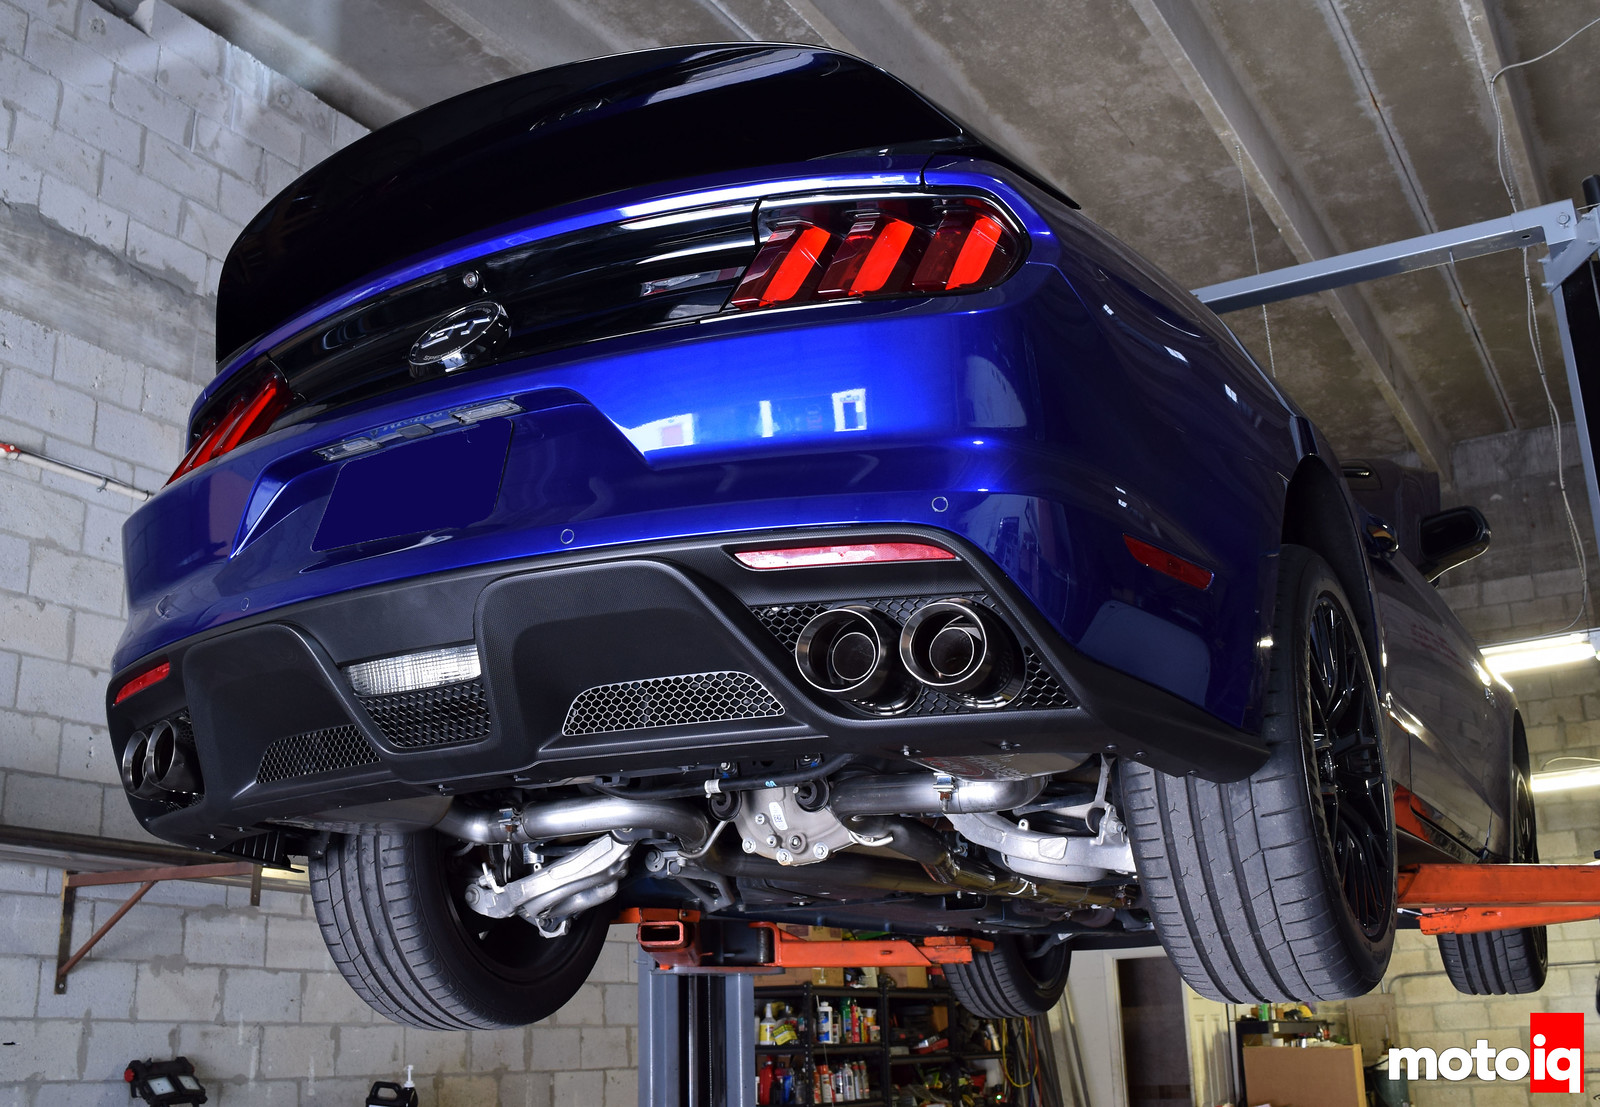 Shelby GT350 lower valence and exhaust installed